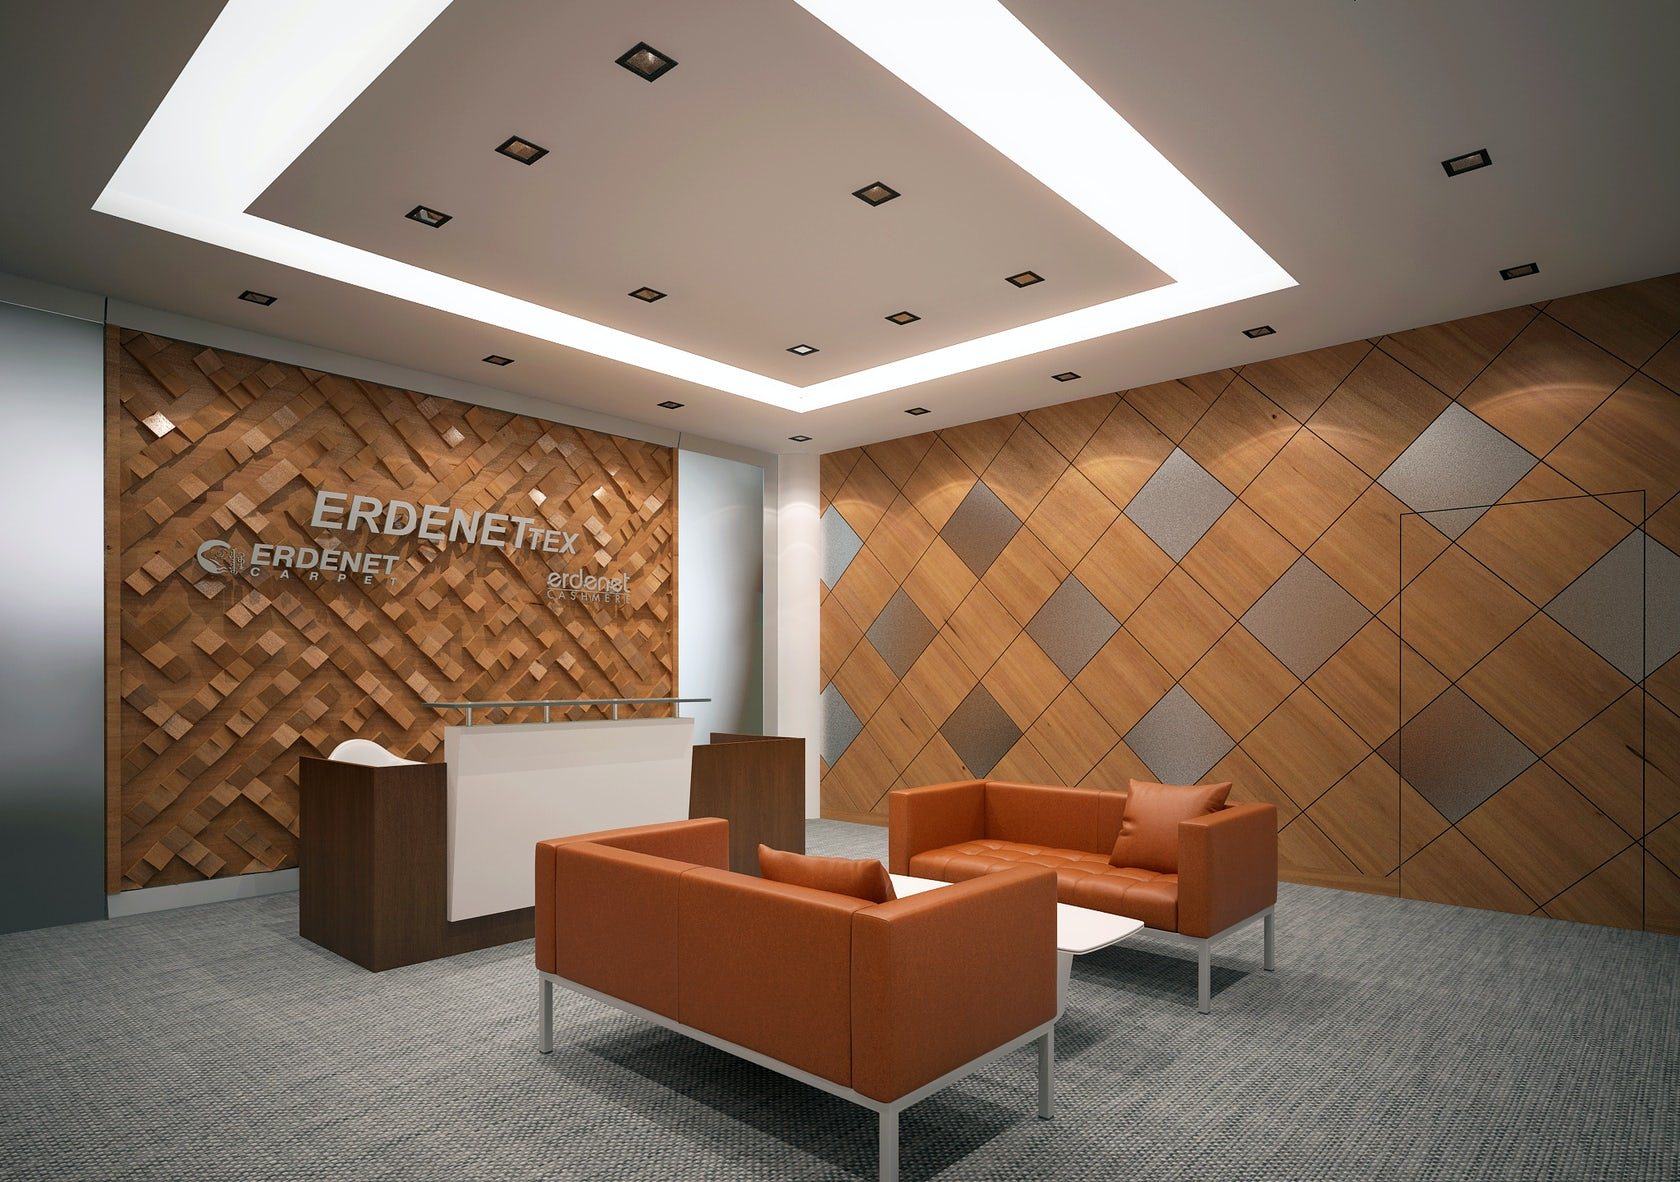 Erdenet carpet office interior design architizer for Office design instagram